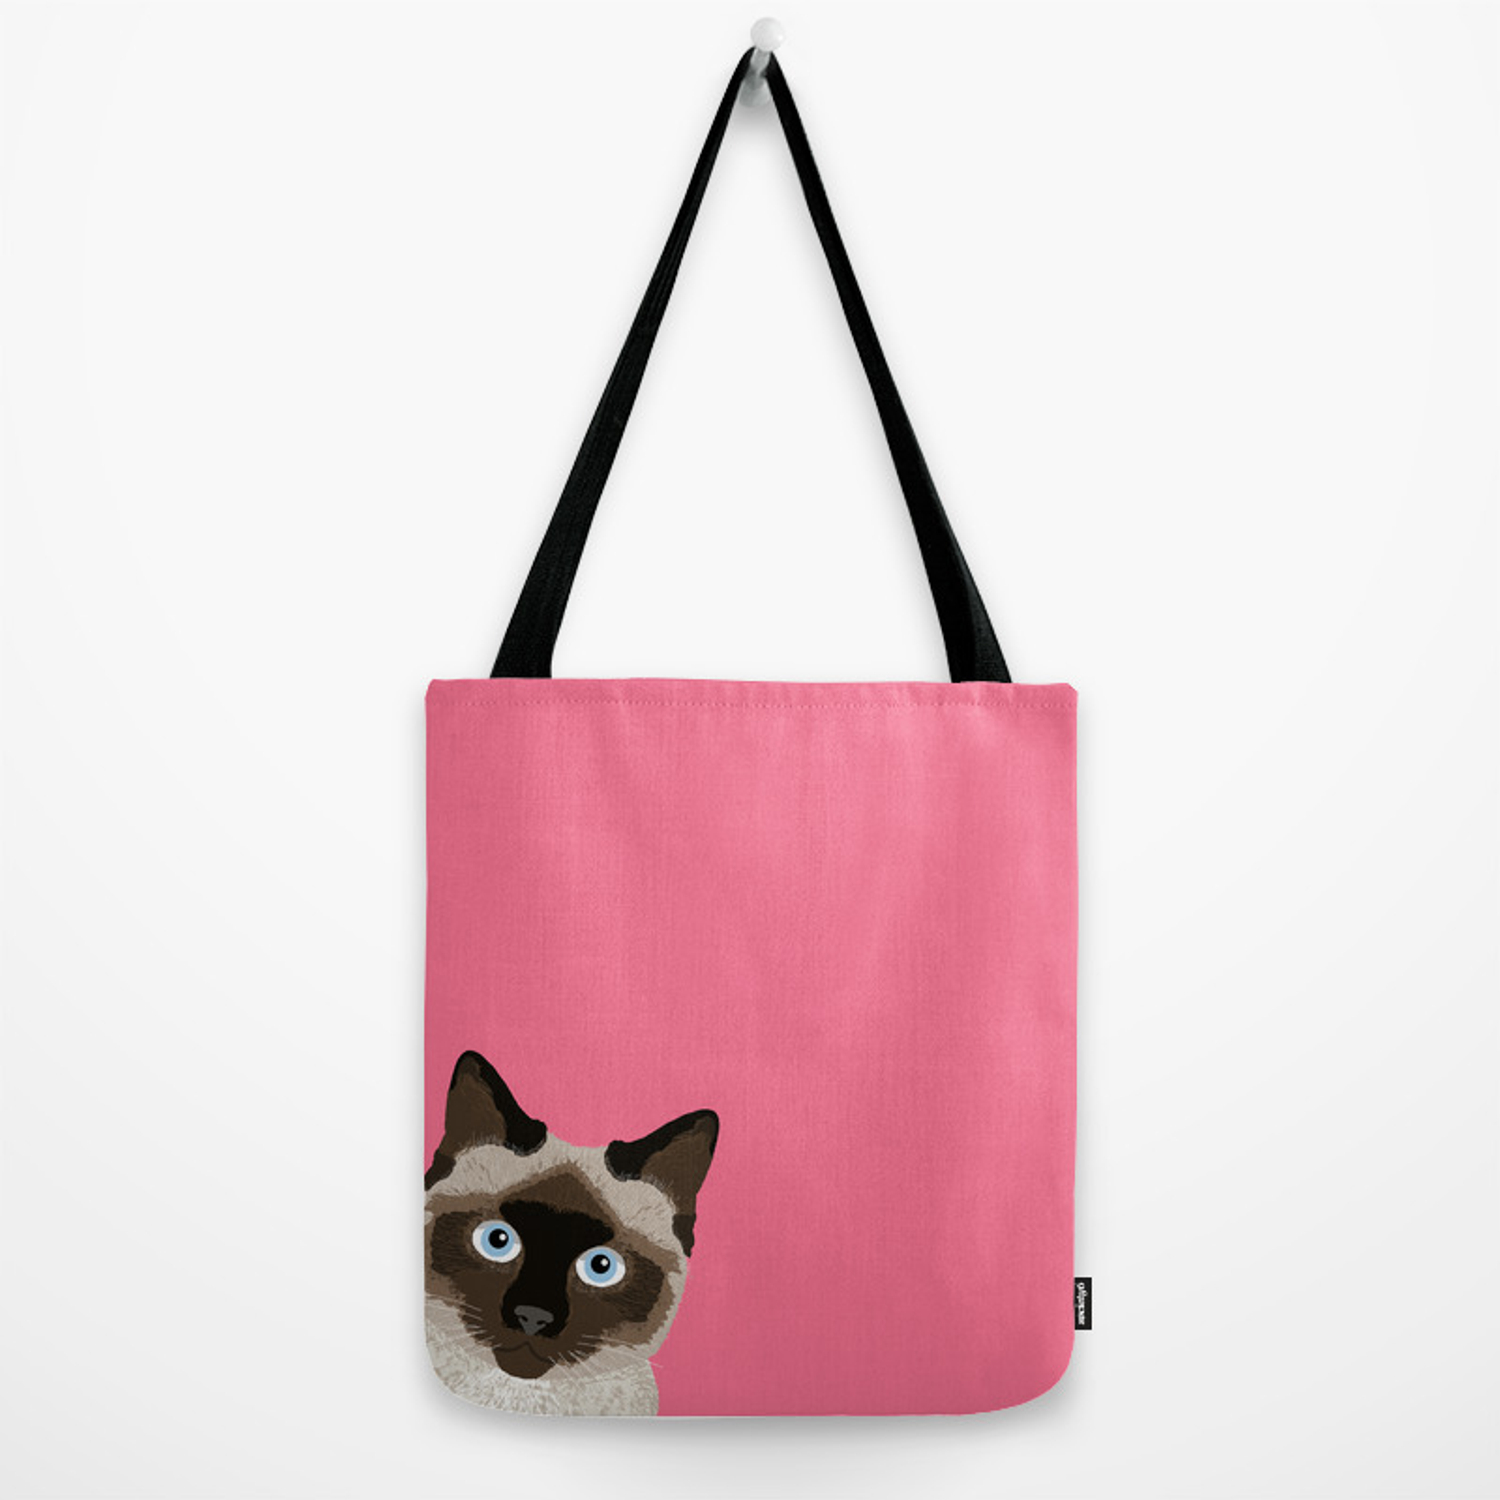 6b0c149b8d Peeking Siamese Cat - Funny cat meme for cat lovers, cat ladies gifts for  cat people Tote Bag by petfriendly | Society6